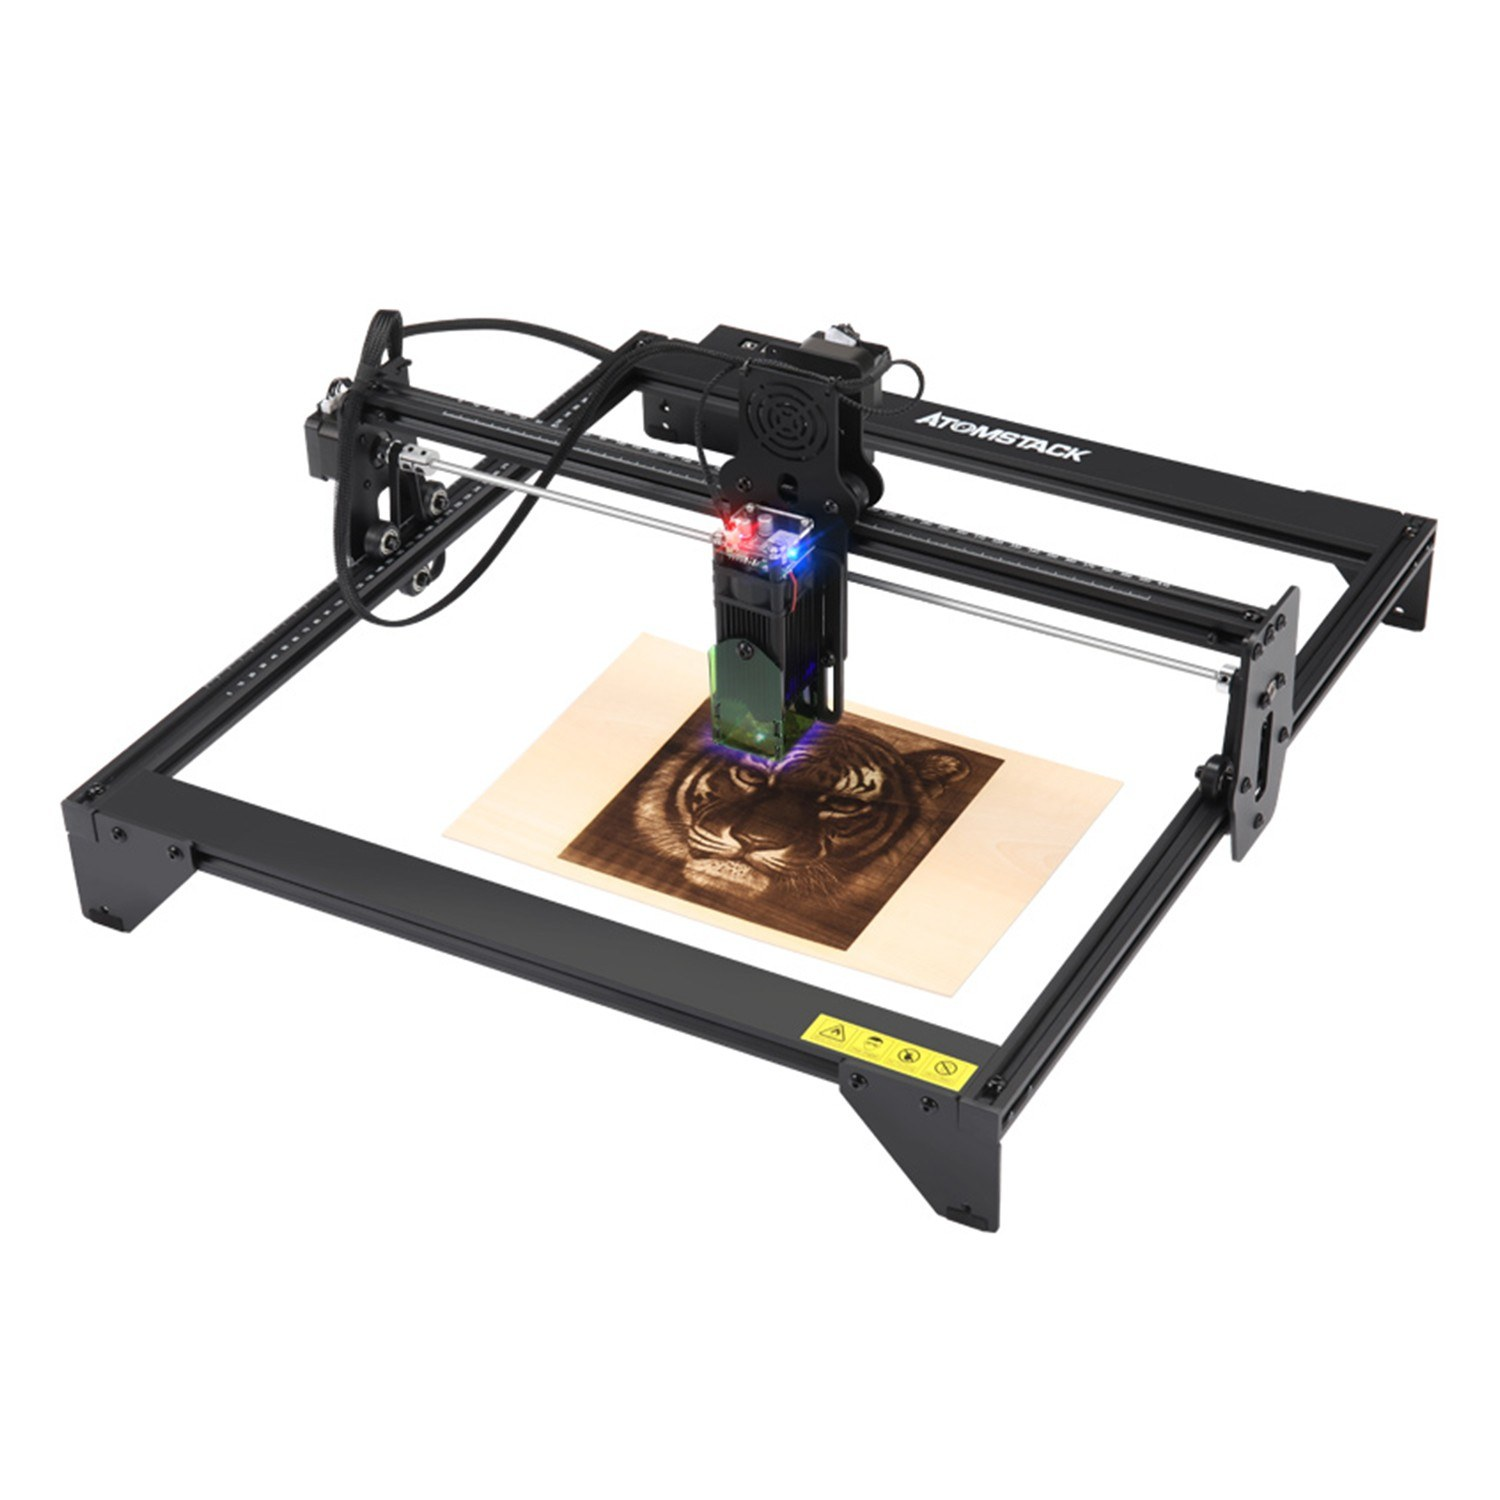 tomtop.com - 44% OFF ATOMSTACK A5 20W Laser Engraver, Free Shipping $225